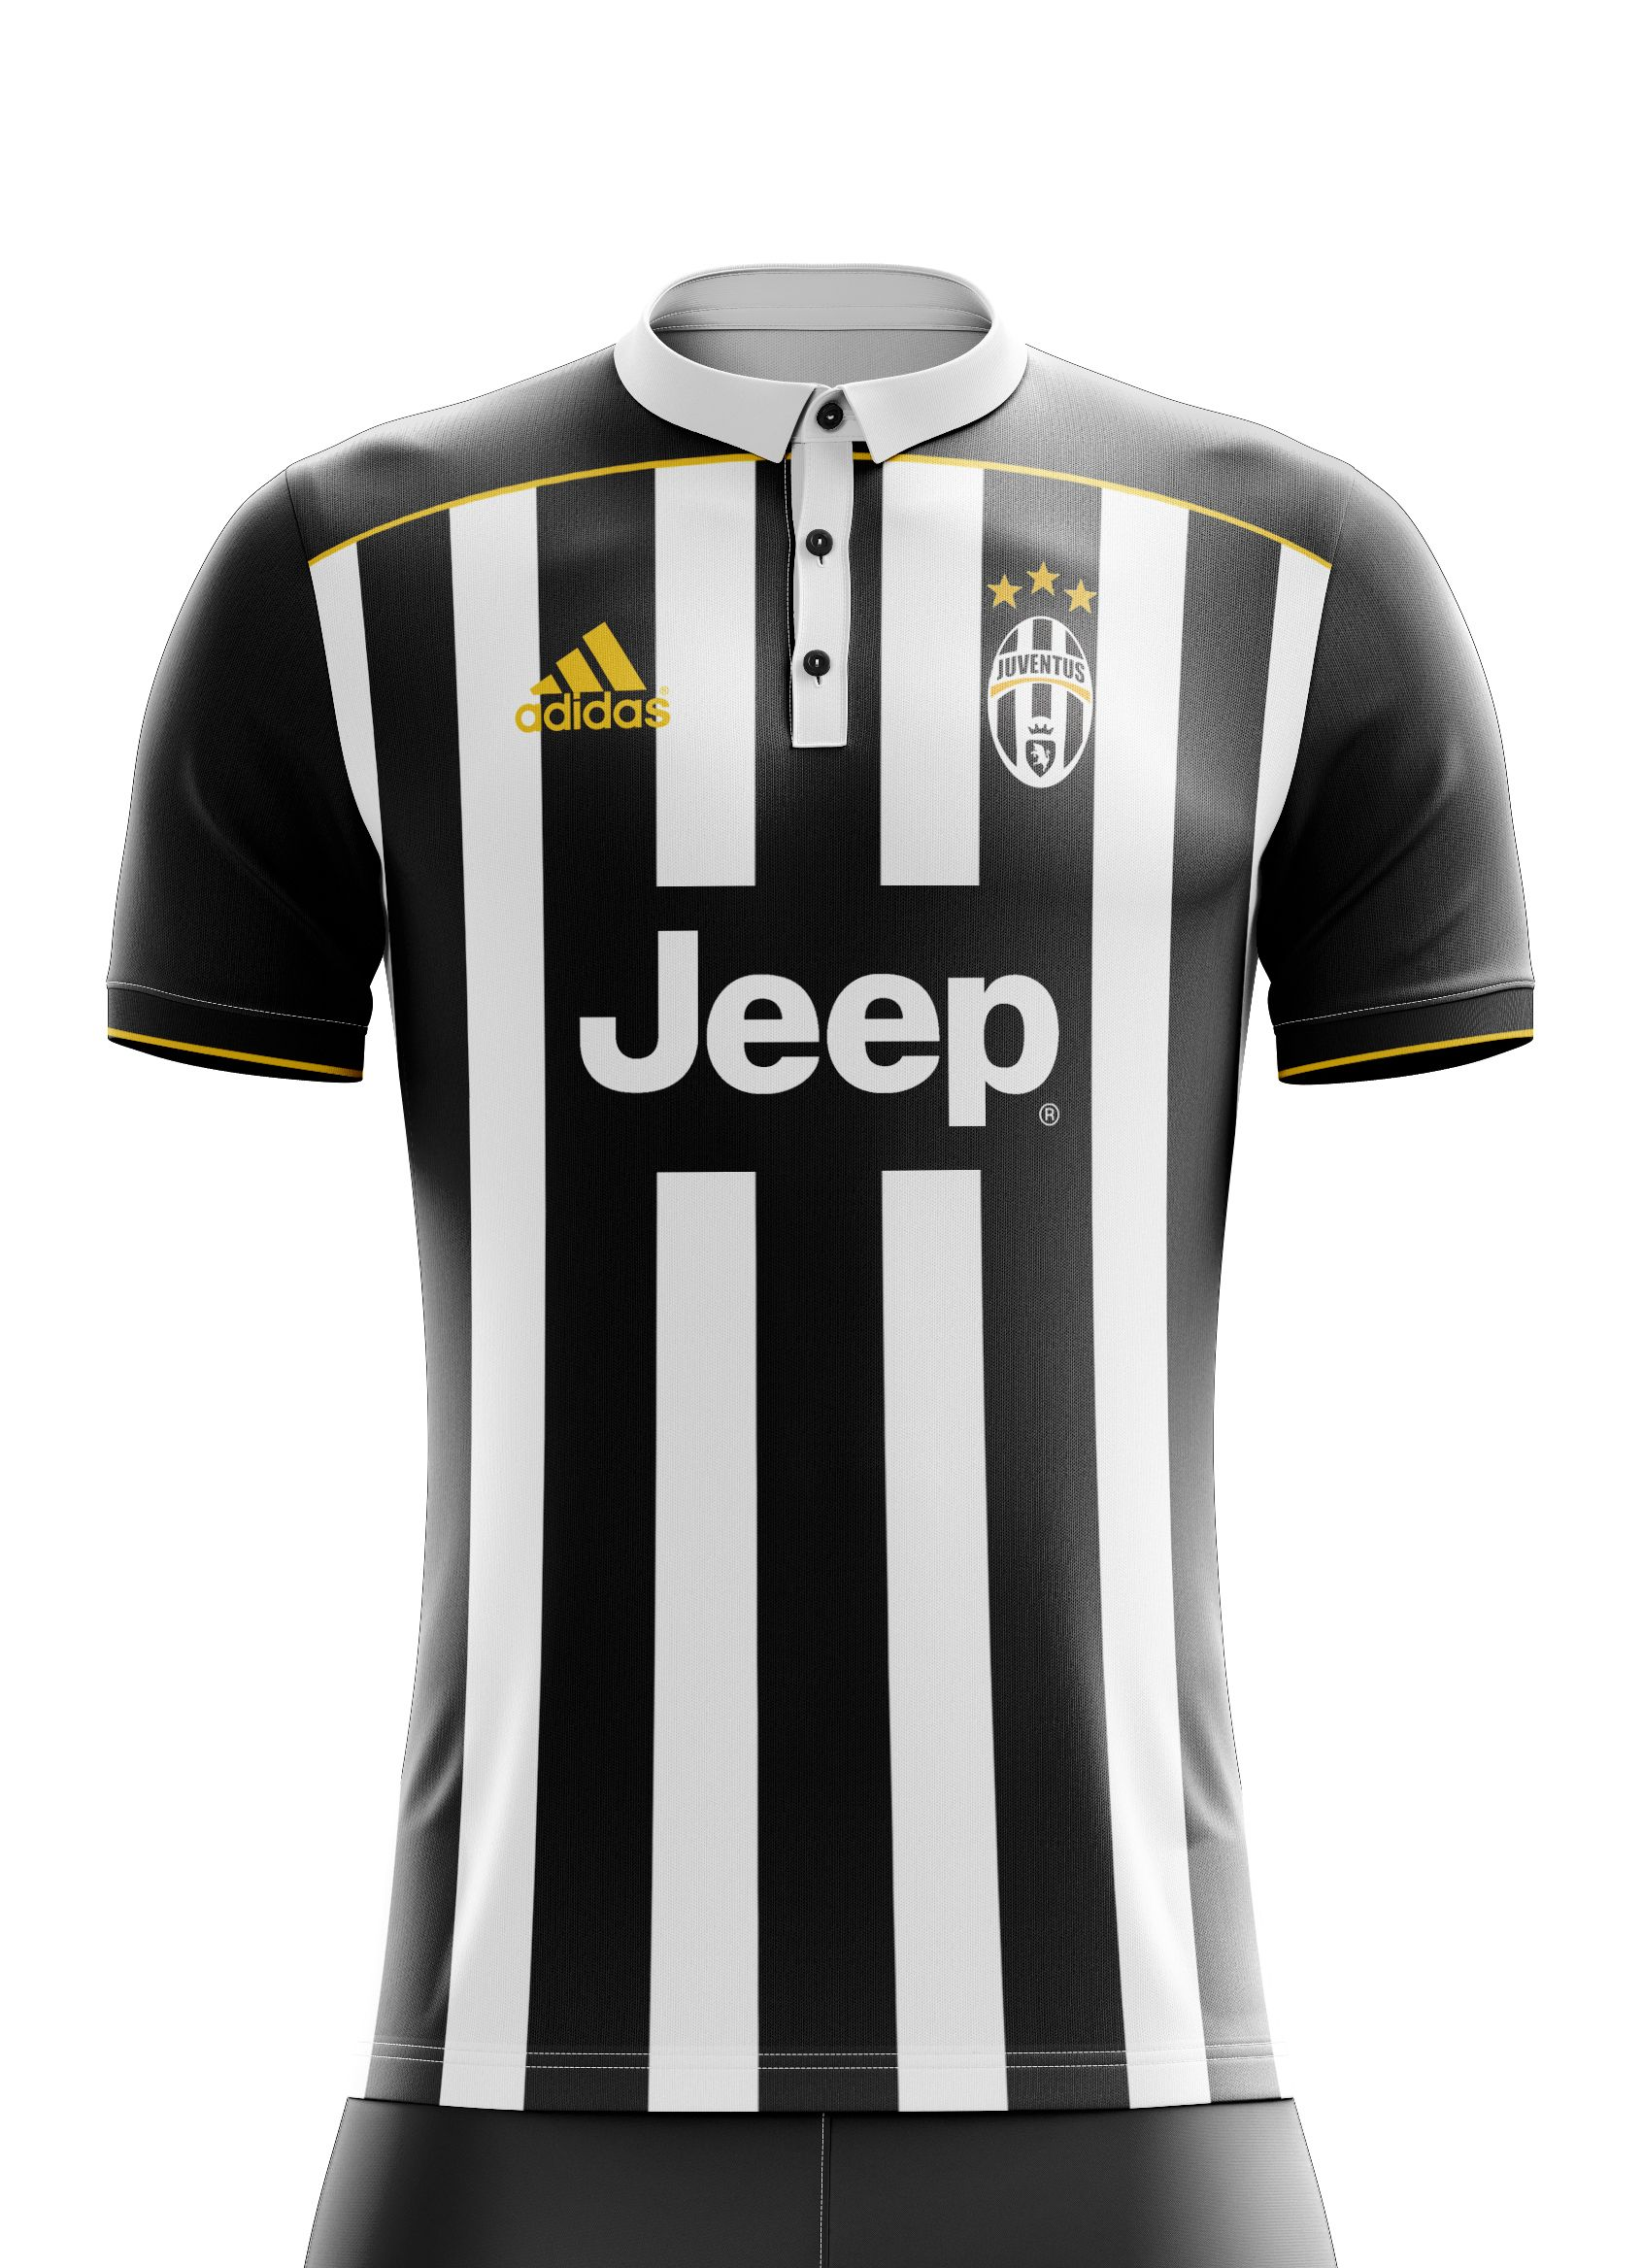 370eb4e62 I designed football kits for Juventus FC for the upcoming season 17 ...